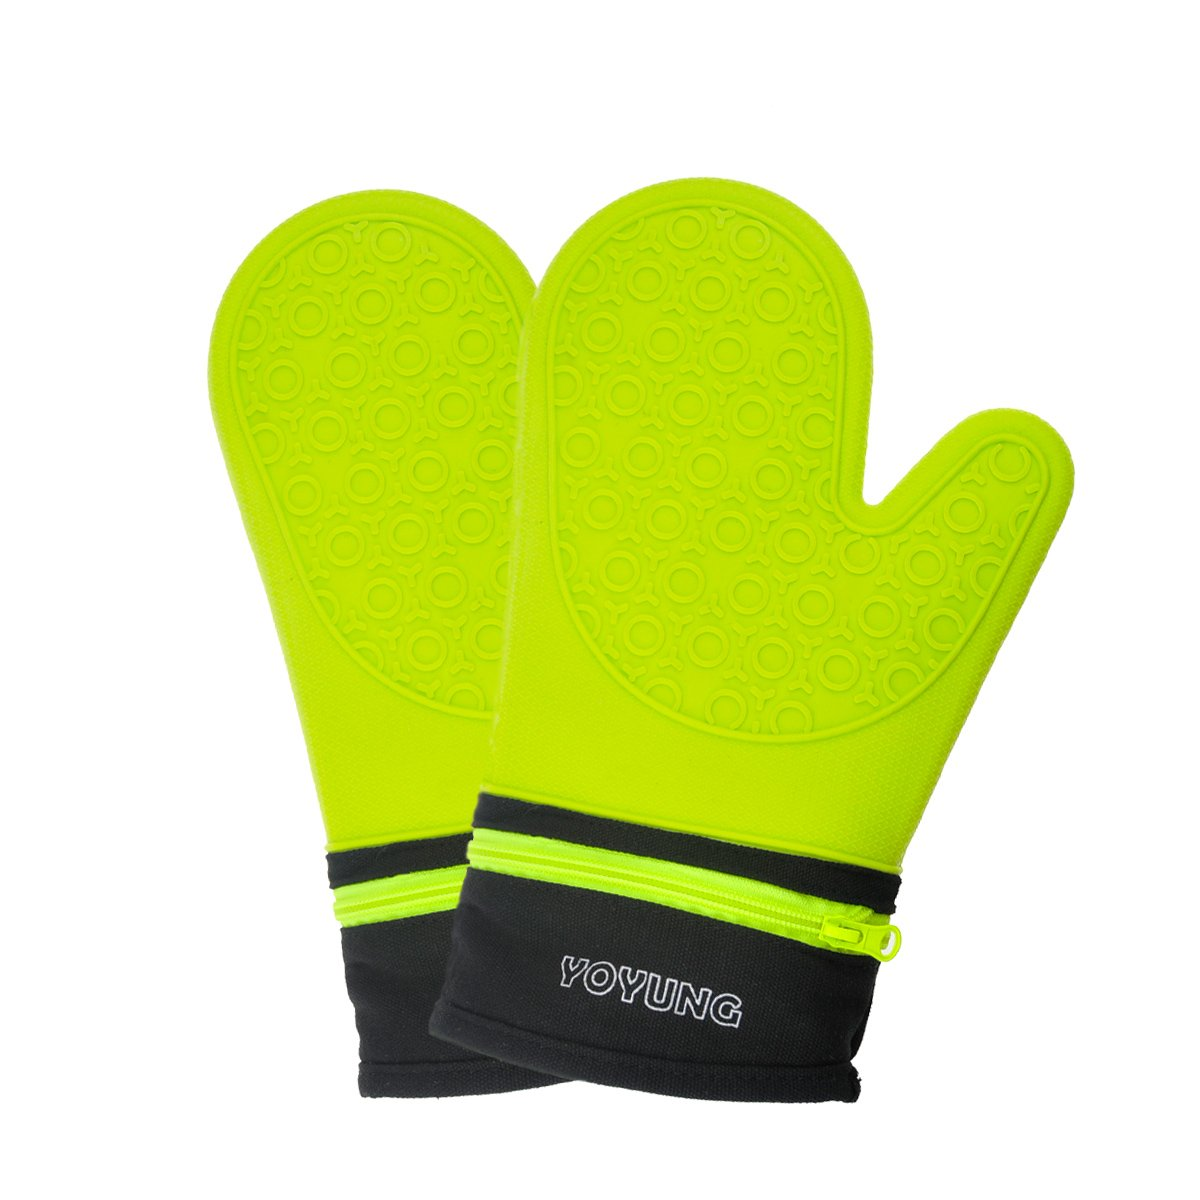 Detachable Silicone Oven Mitt - Oven Mitts with Quilted Cotton Lining - 1 Pair of Professional Heat Resistant Potholder Gloves - Washable - Green